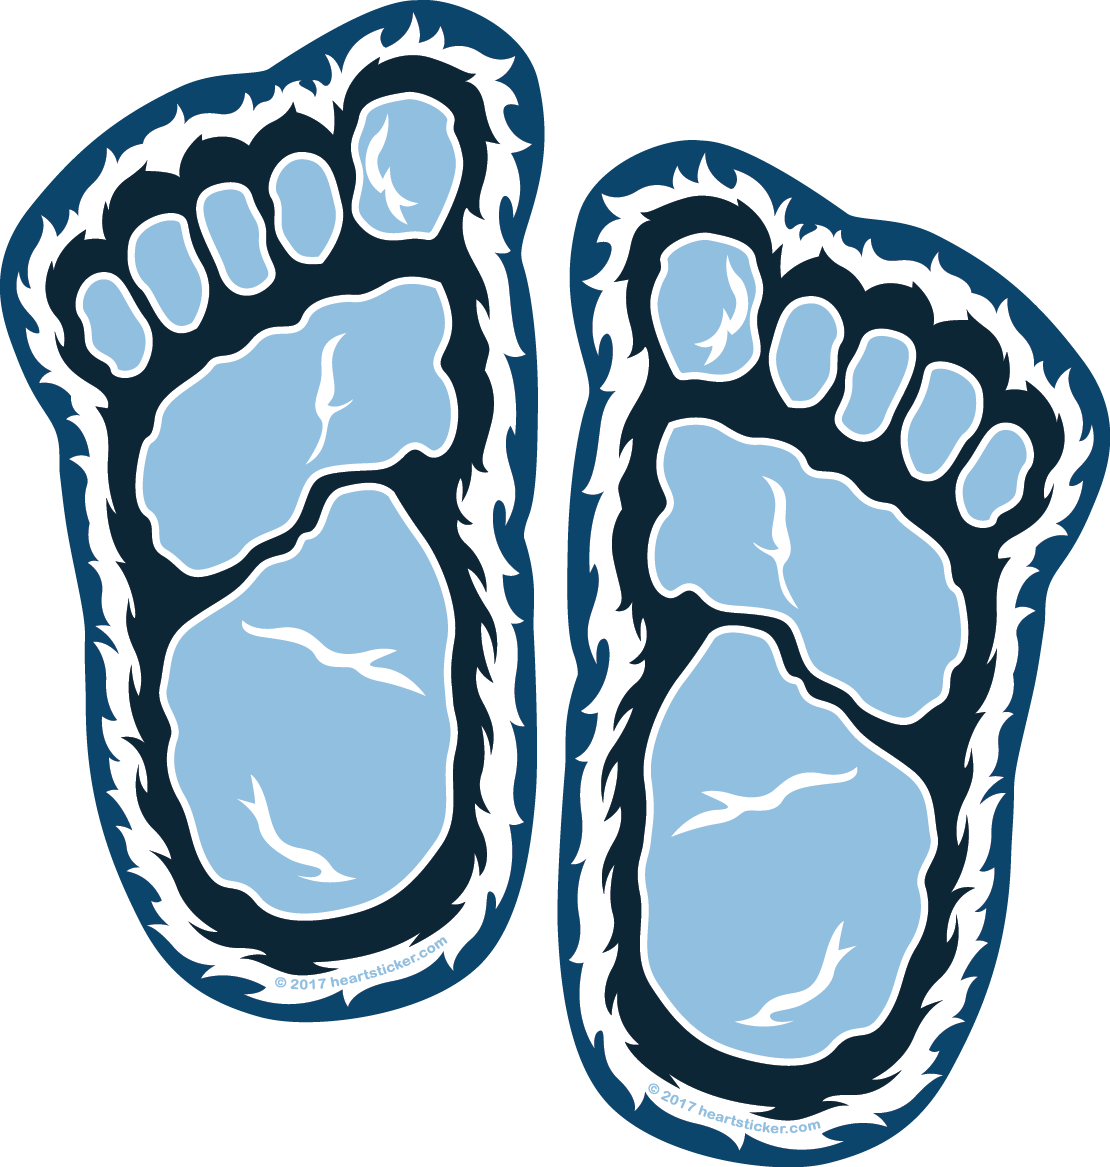 Yeti Foot Print Sticker (2 in 1) Small Foot | Die Cut - Heart In Oregon